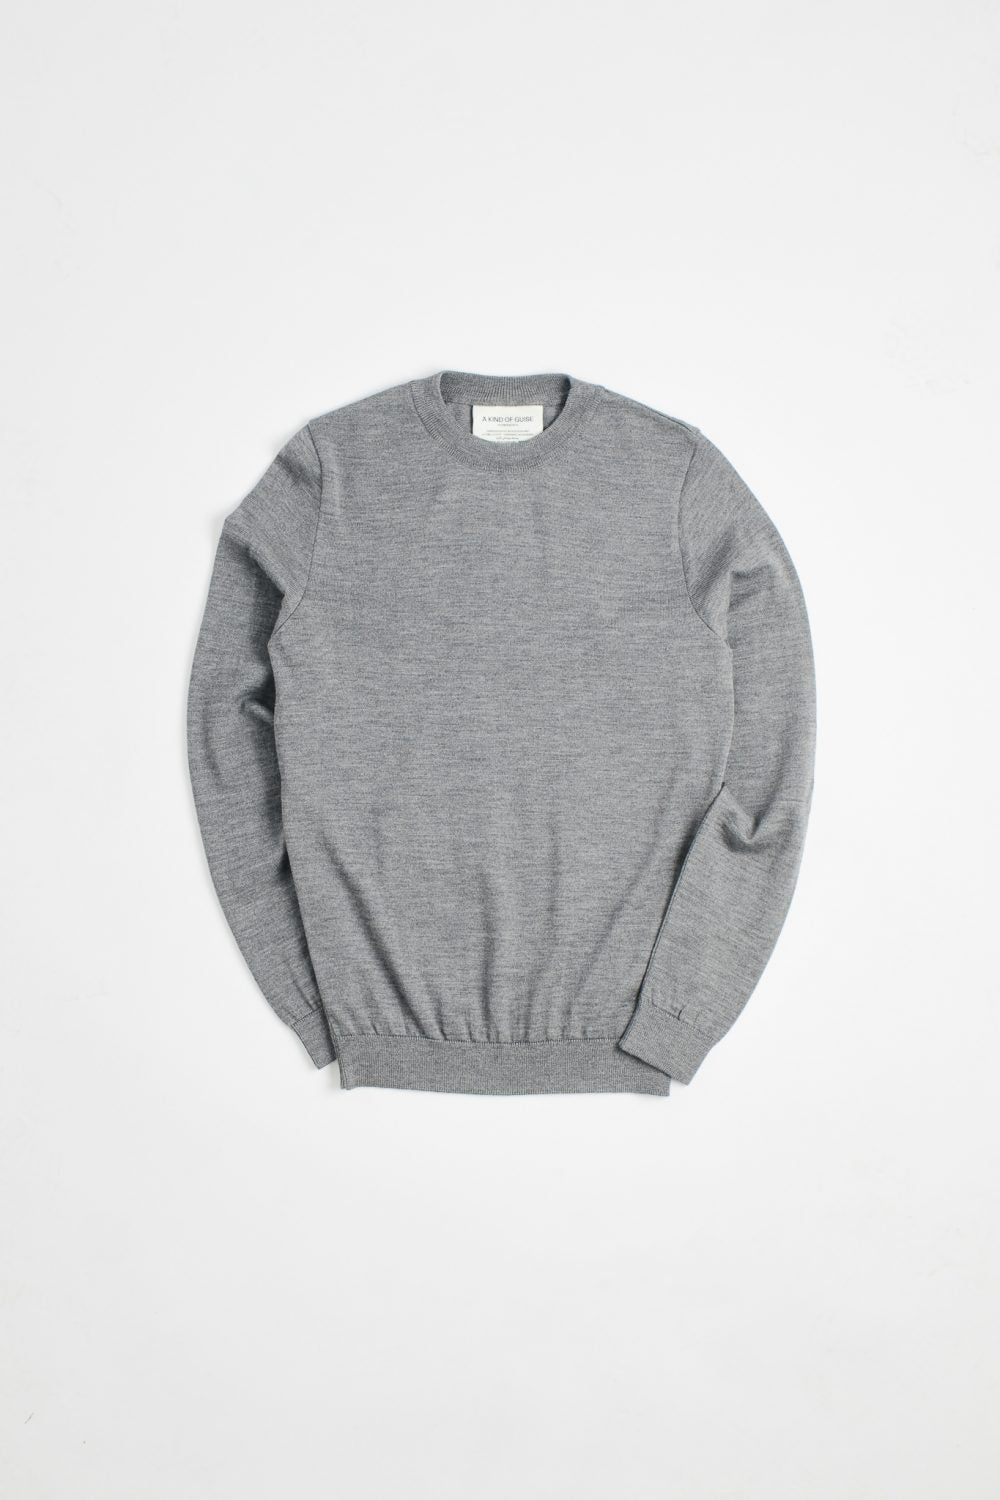 A-Kind-of-Guise-Permanents-Crewneck-Grey